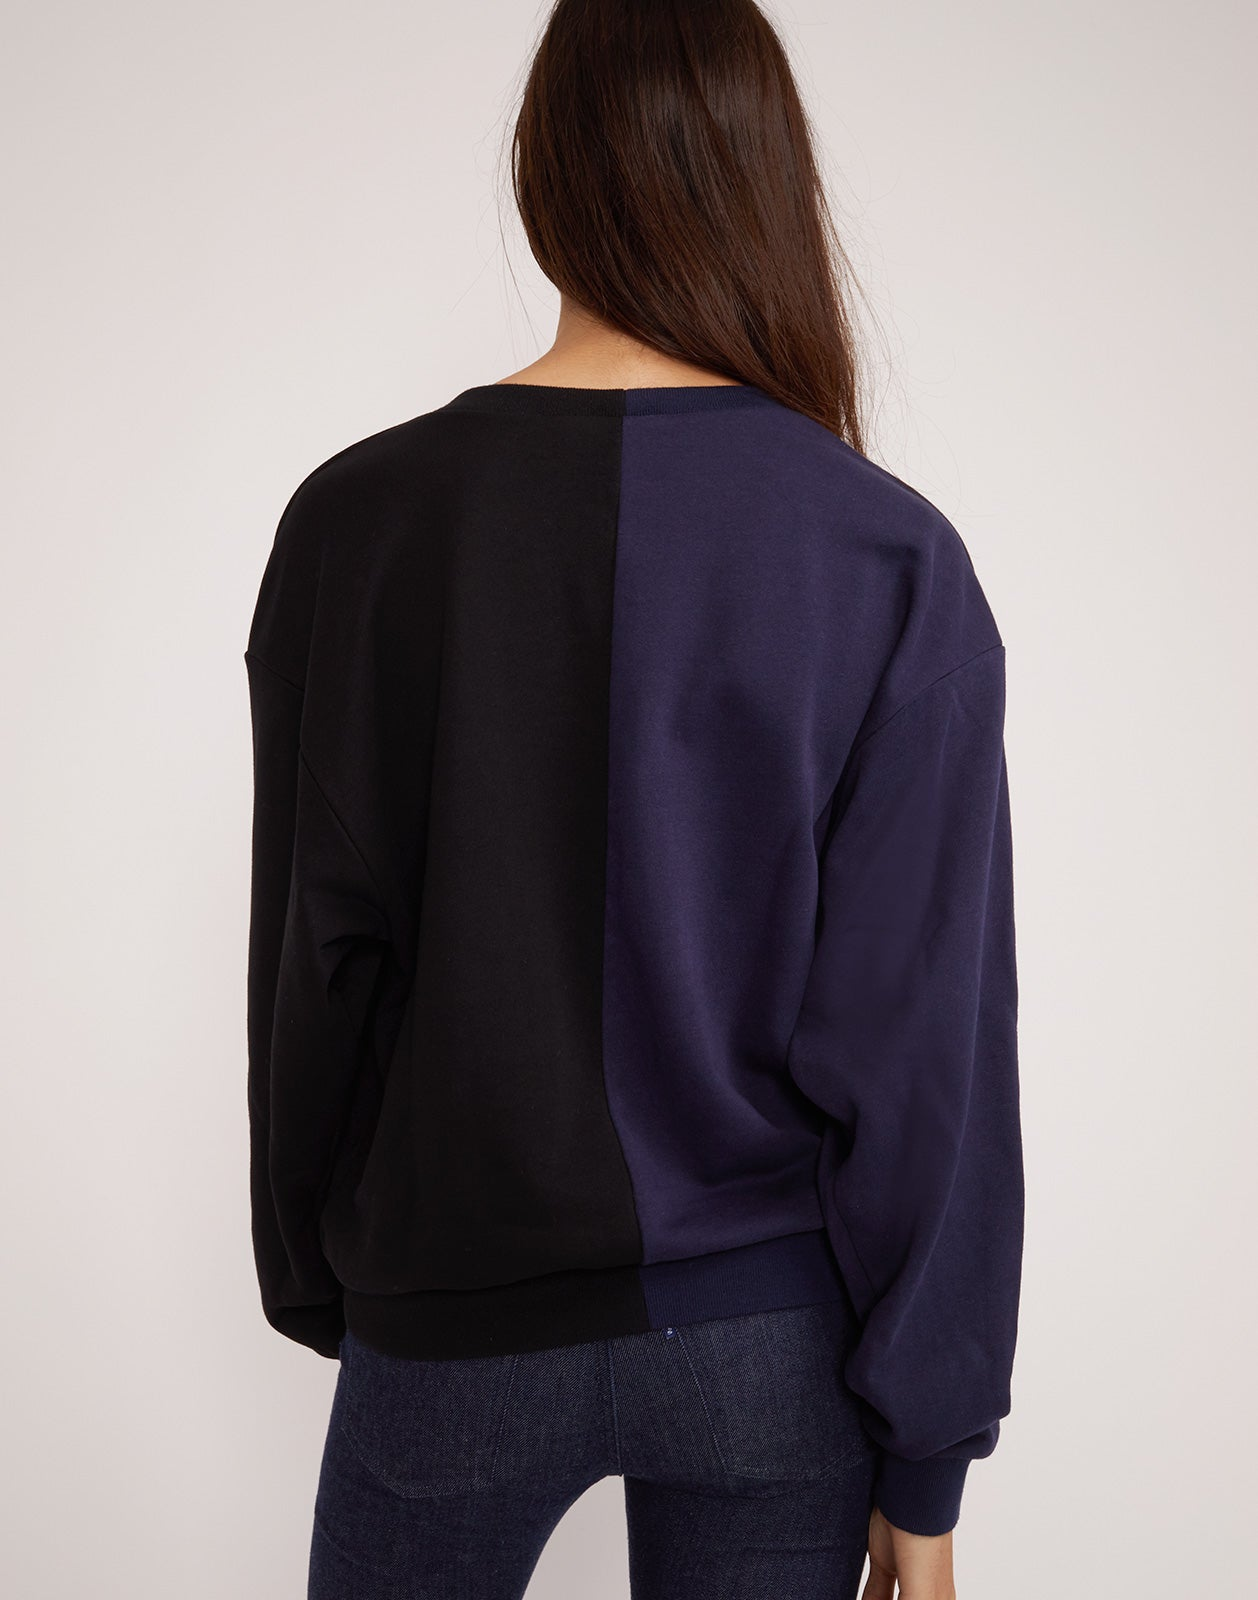 Back view of the CaliYork sweatshirt in half navy half black.